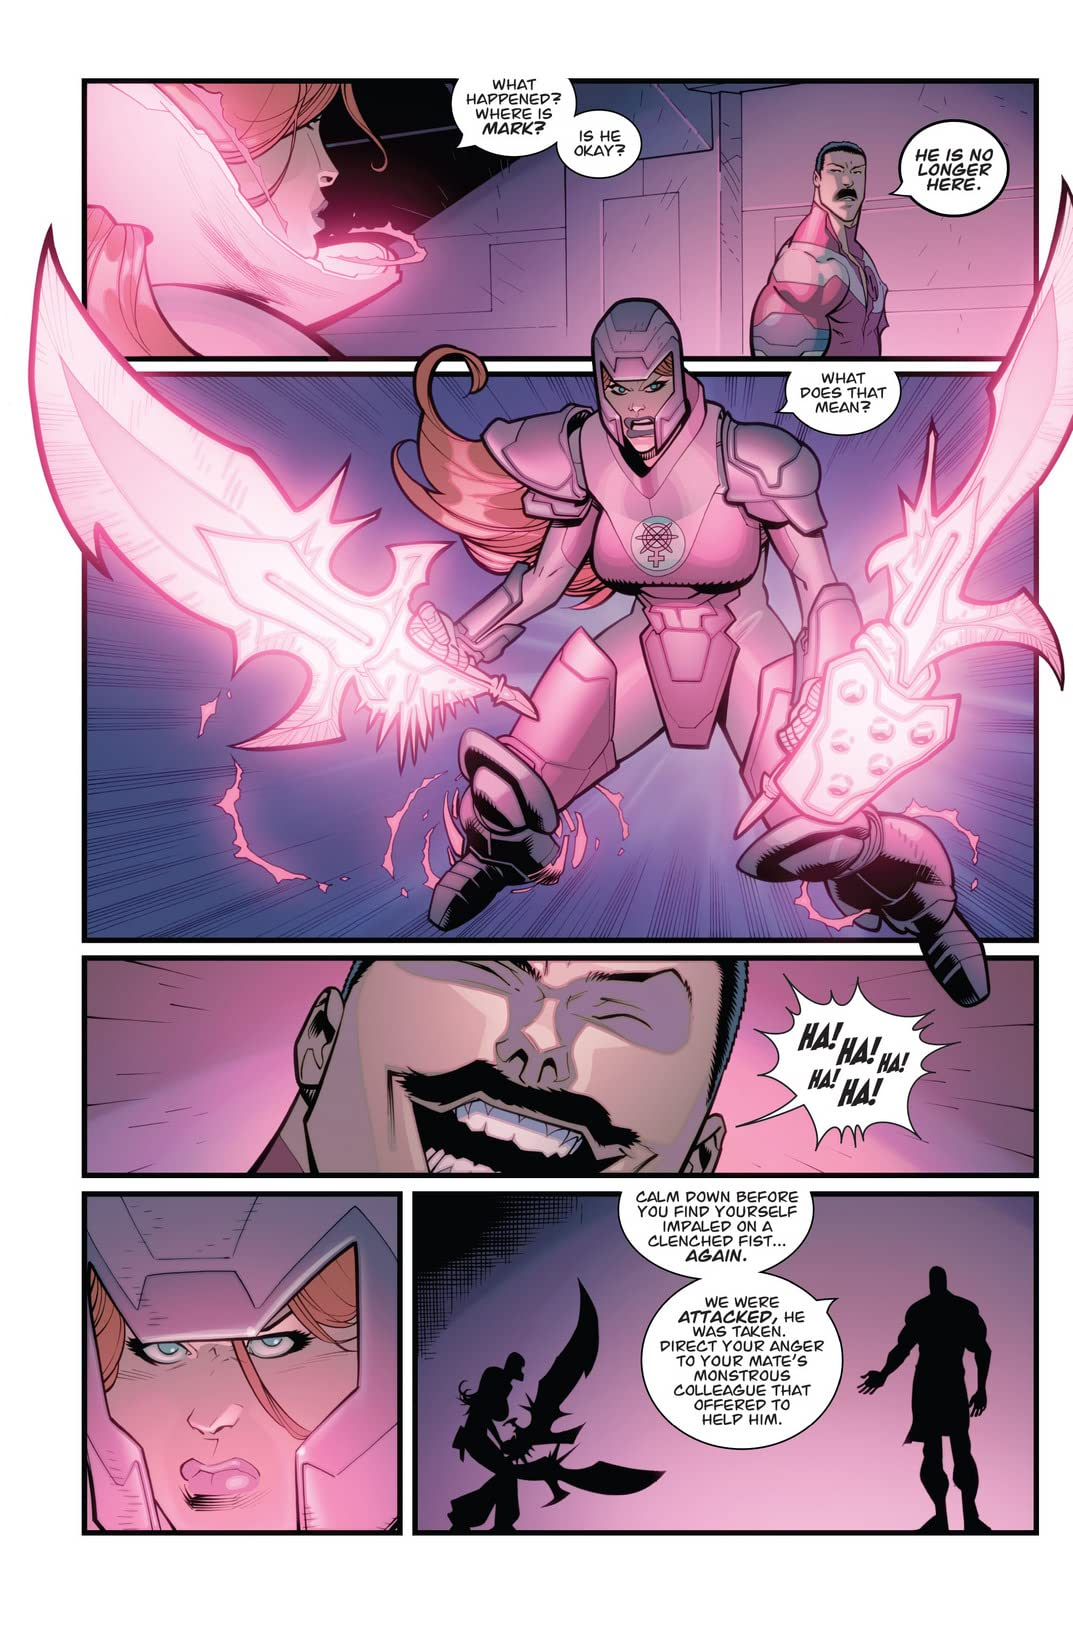 Invincible Vol. 17: Whats Happening